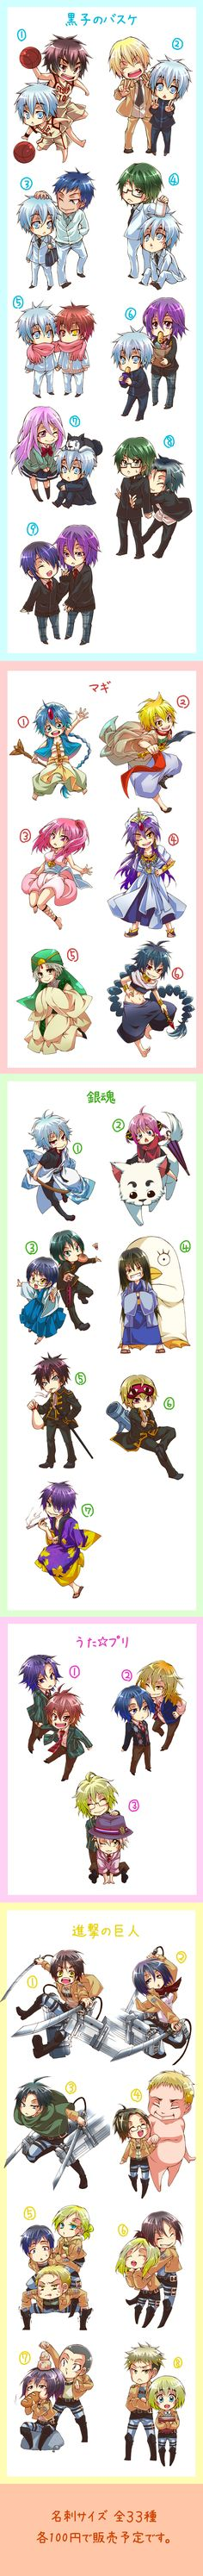 Anime 1) Kuroko no Basket, 2) Magi, 3) not sure what this one is from 4) Uta No Prince Sama, 5) Attack On Titan